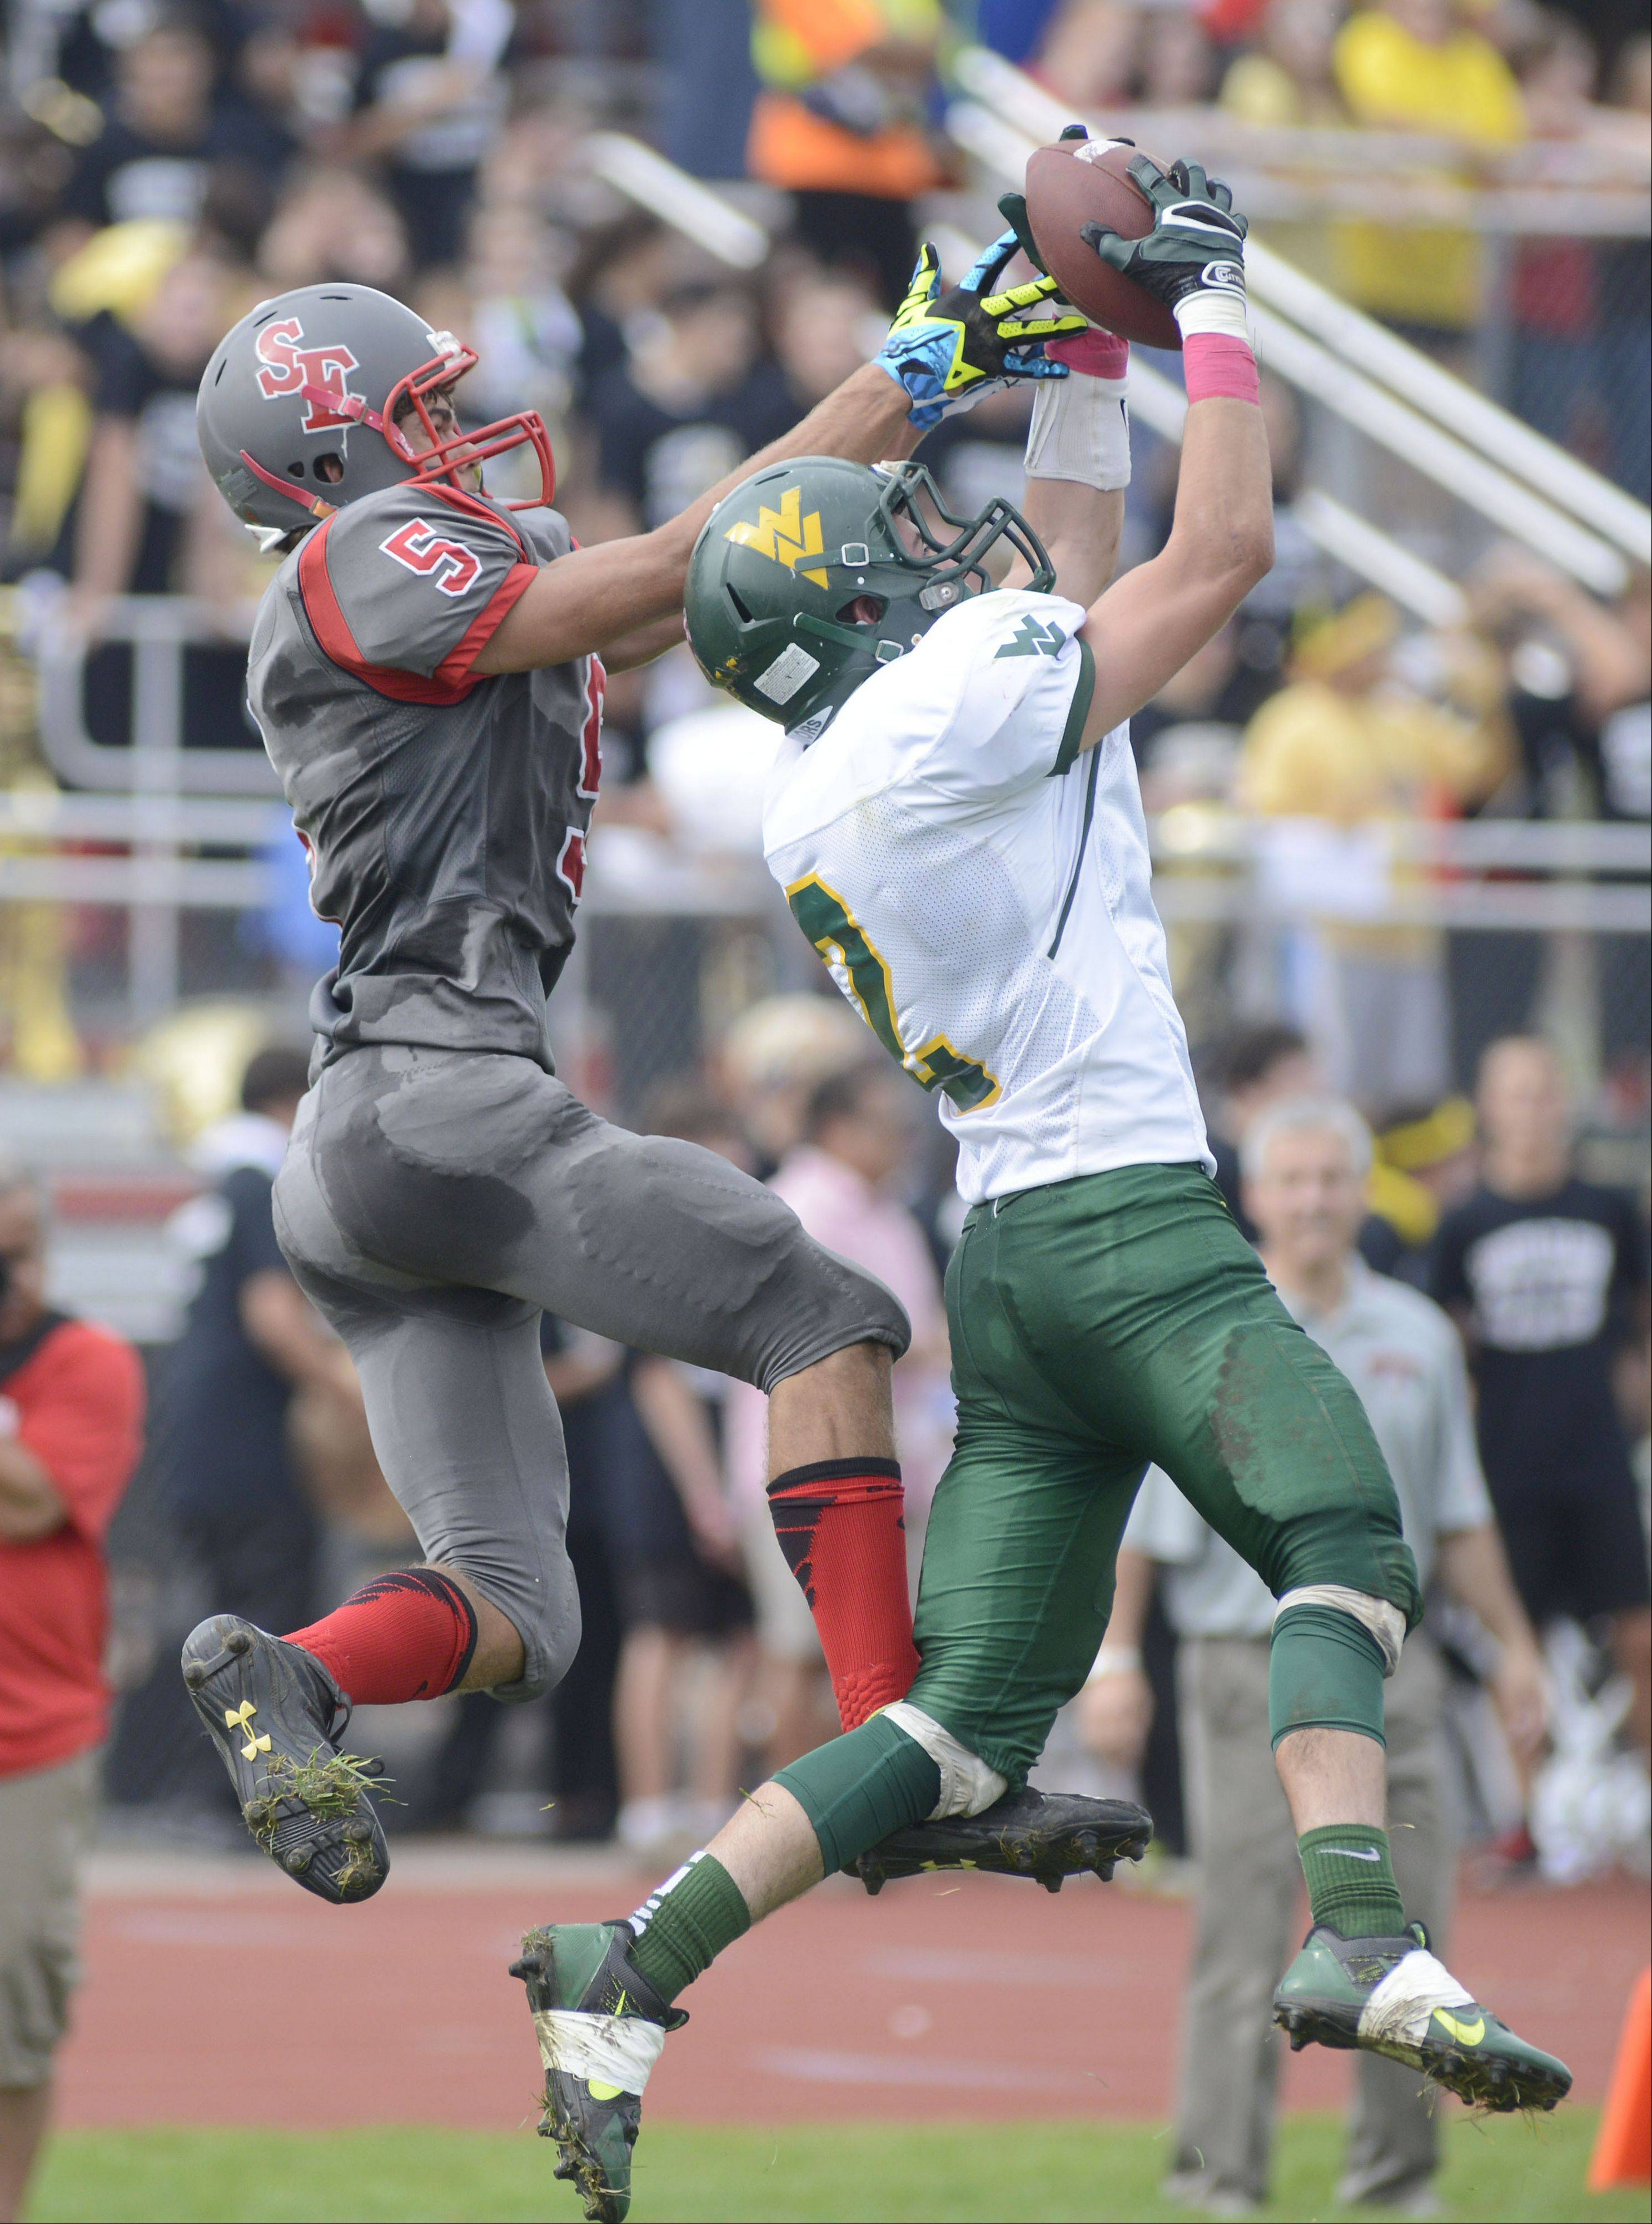 Waubonsie Valley shows its ready for Neuqua